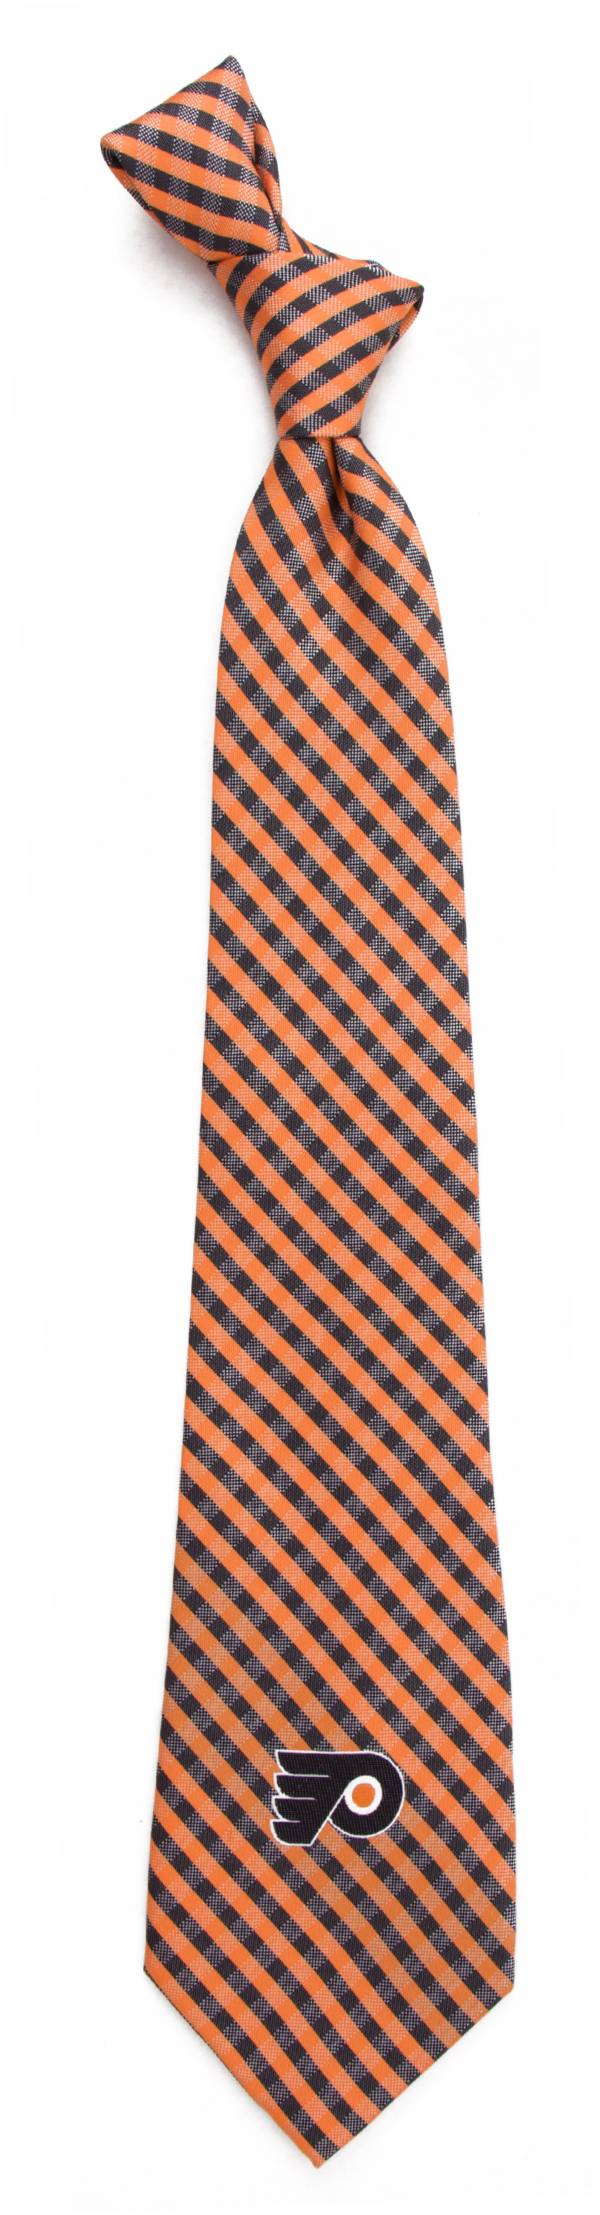 Eagles Wings Philadelphia Flyers Gingham Necktie product image